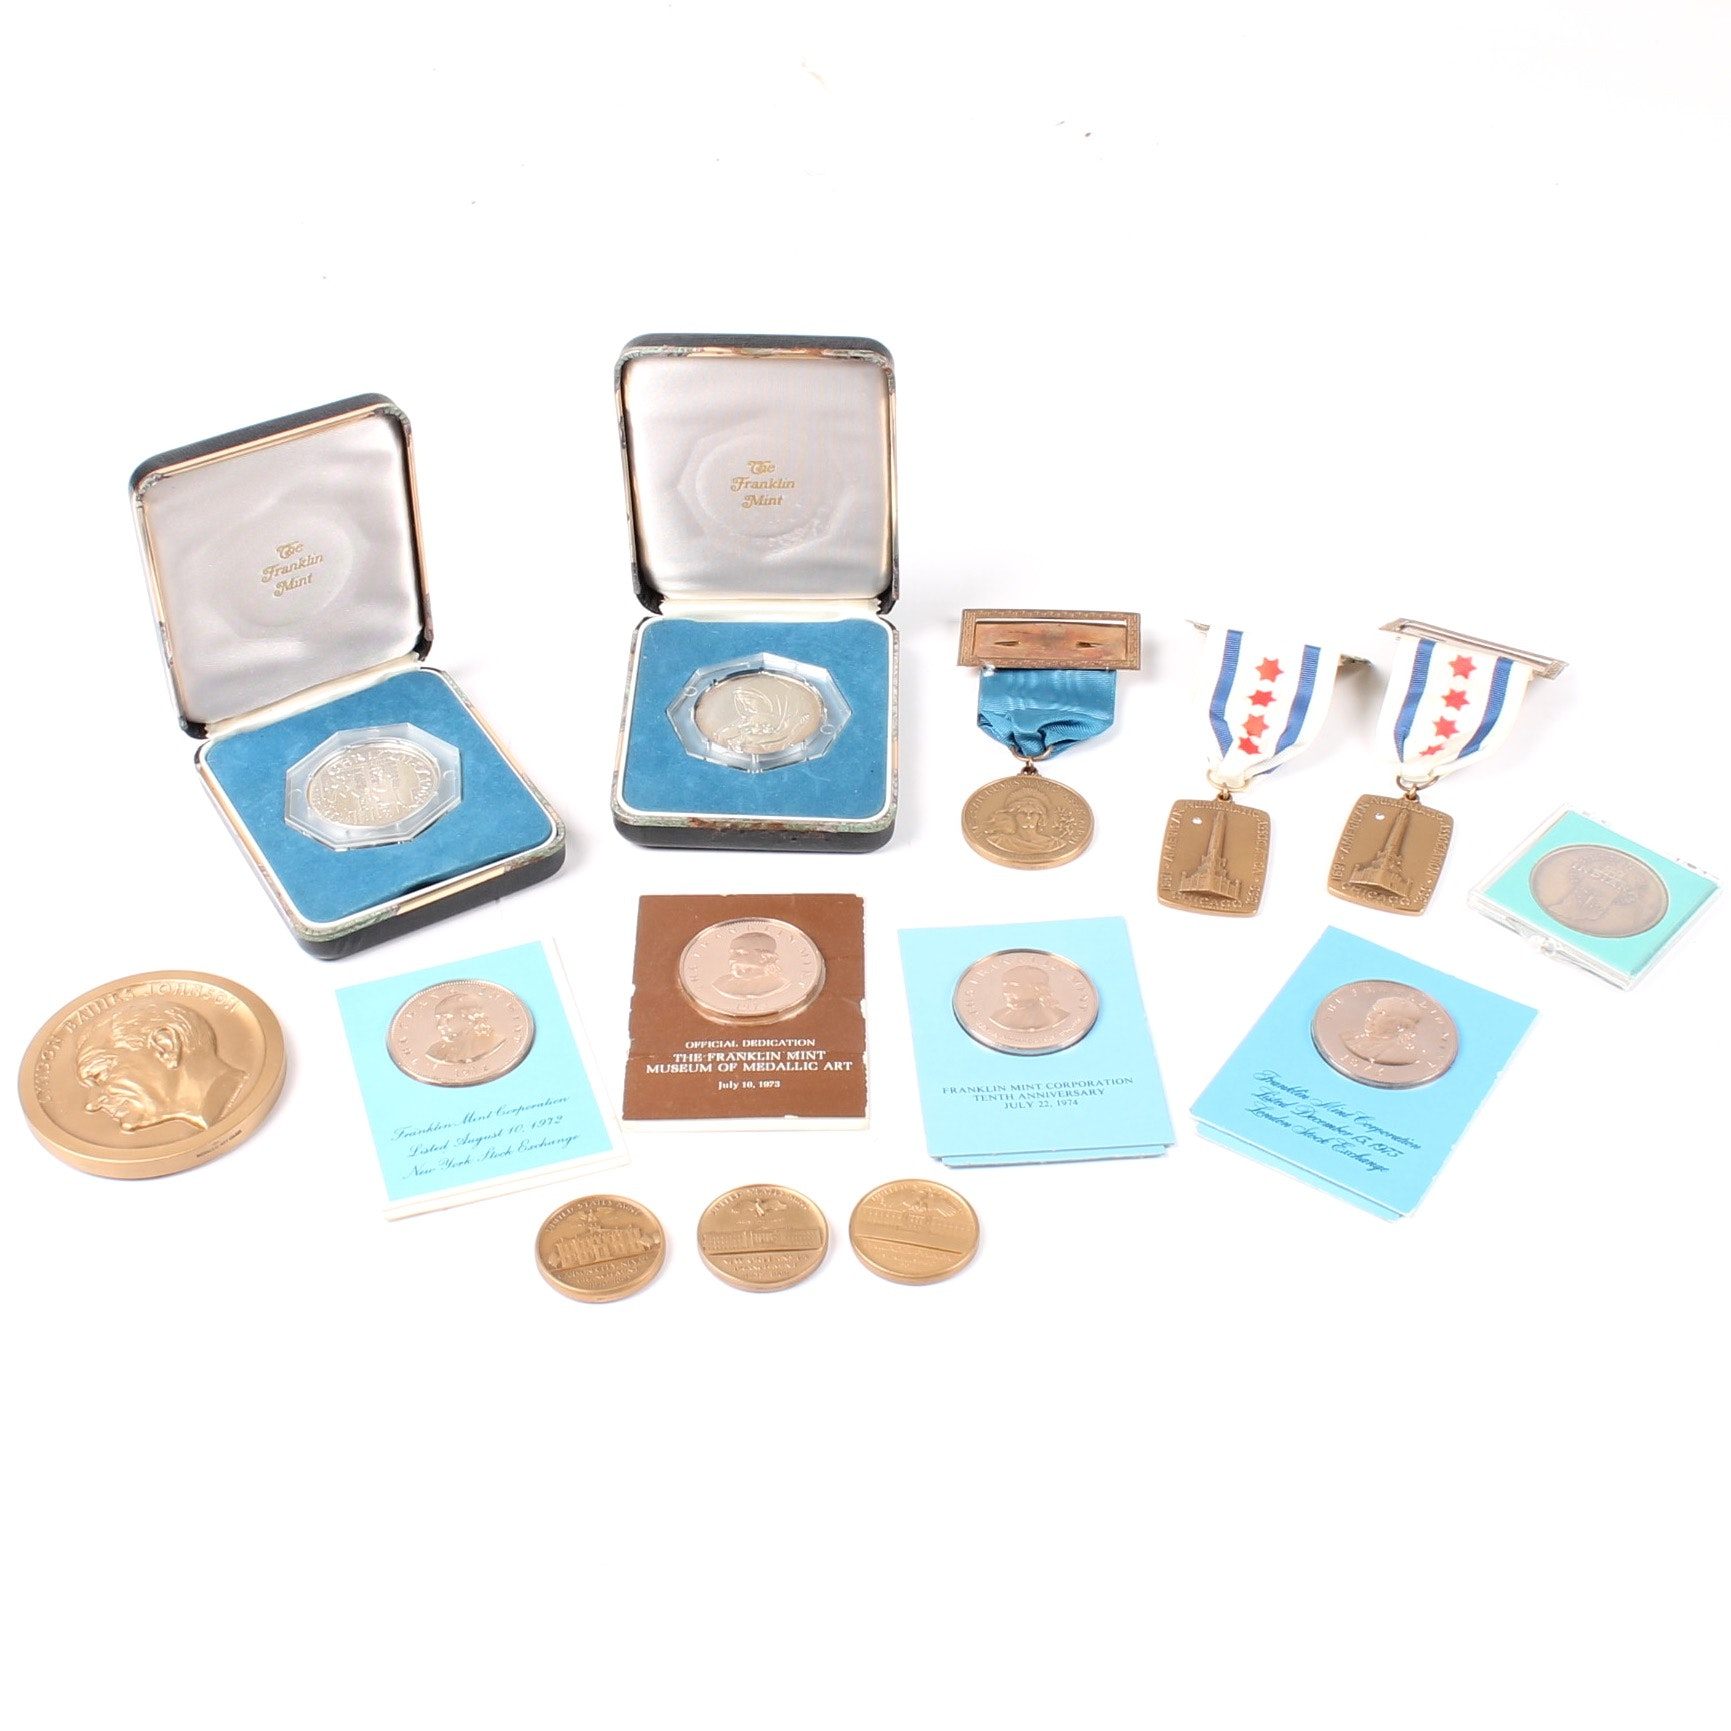 Commemorative Medals Featuring the Franklin Mint